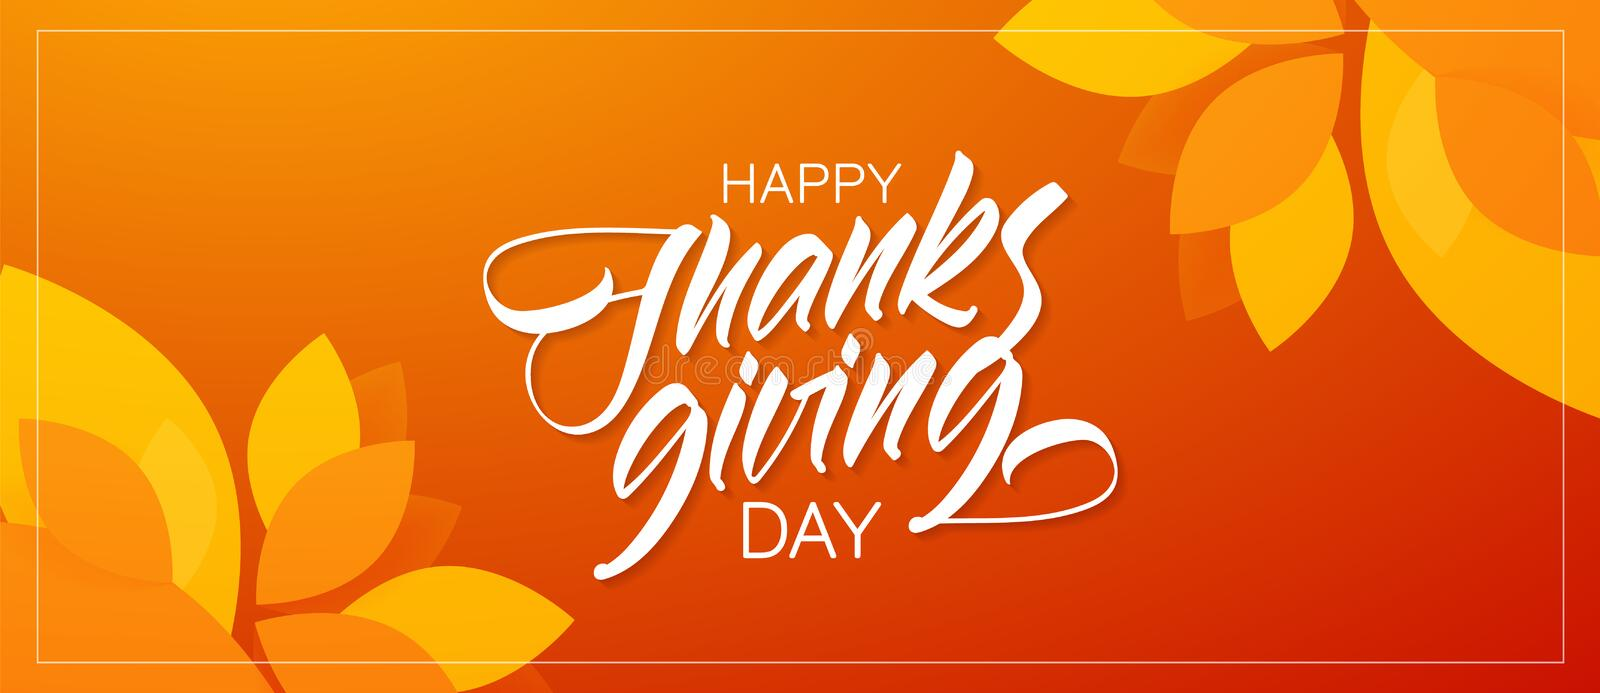 Autumn greeting banner with hand lettering composition of Happy Thanksgiving Day and fall leaves on orange background.  vector illustration